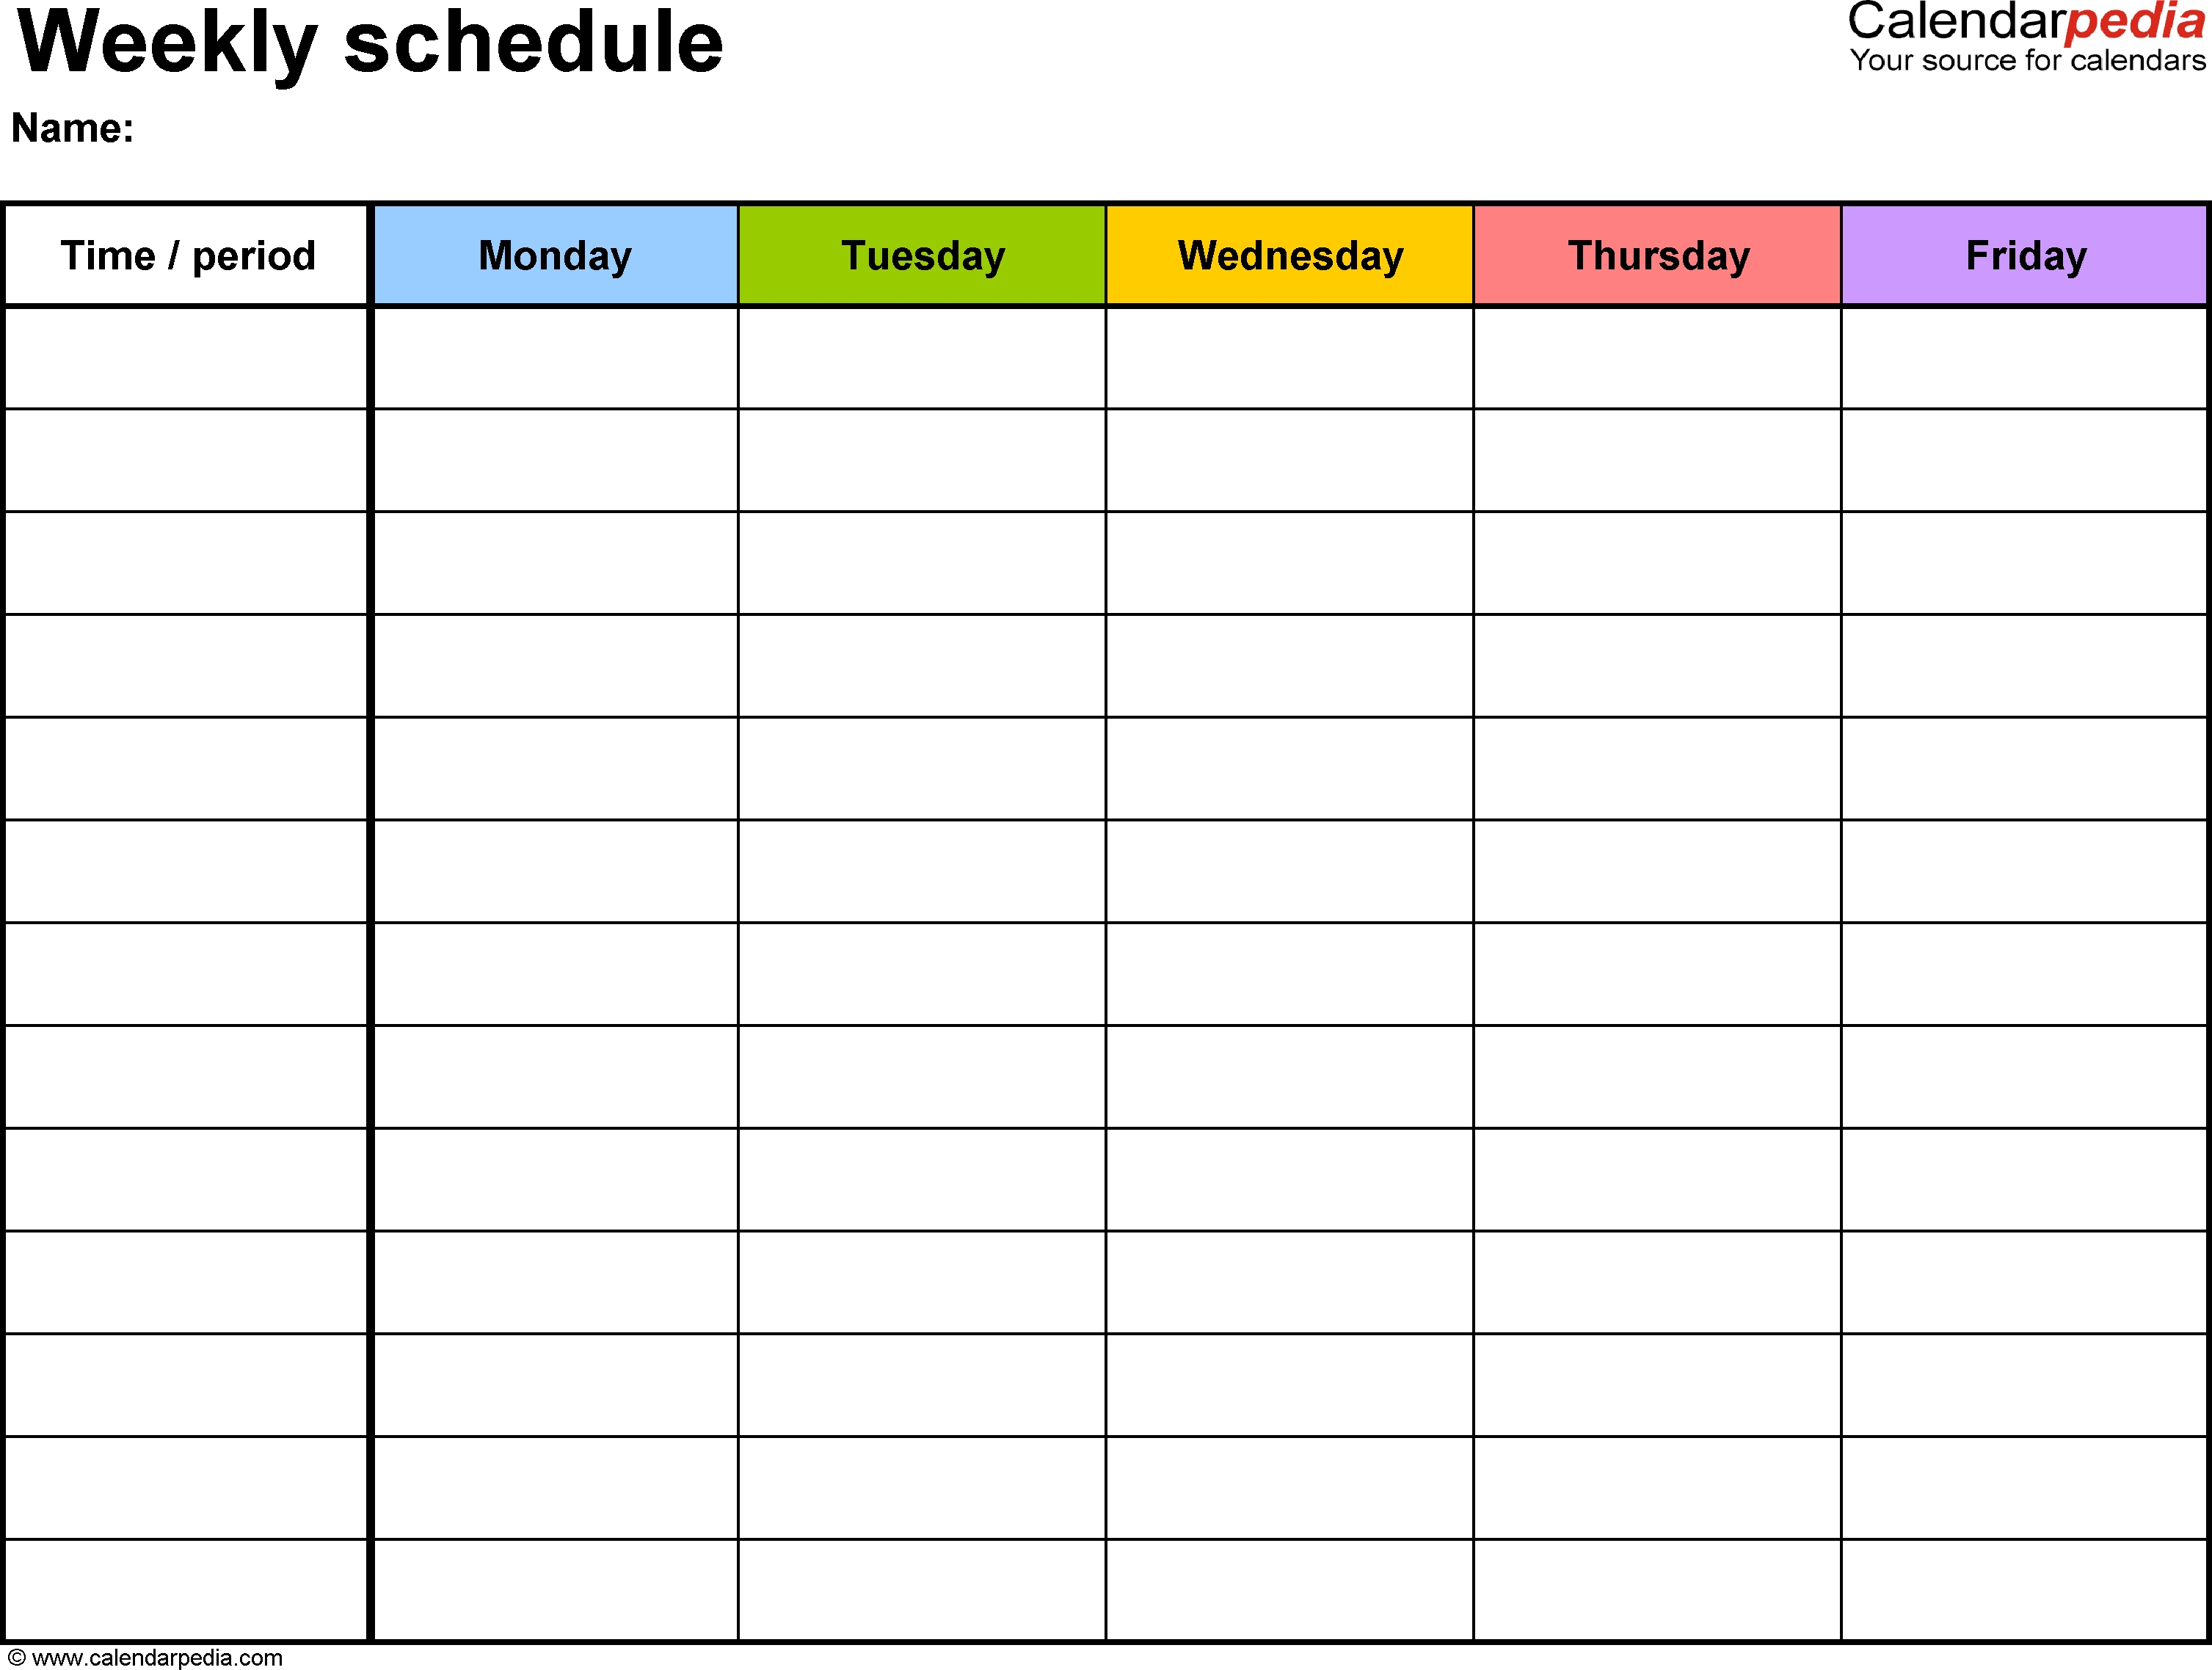 Free Weekly Schedule Templates For Word - 18 Templates inside 5 Day Calendar Template Word